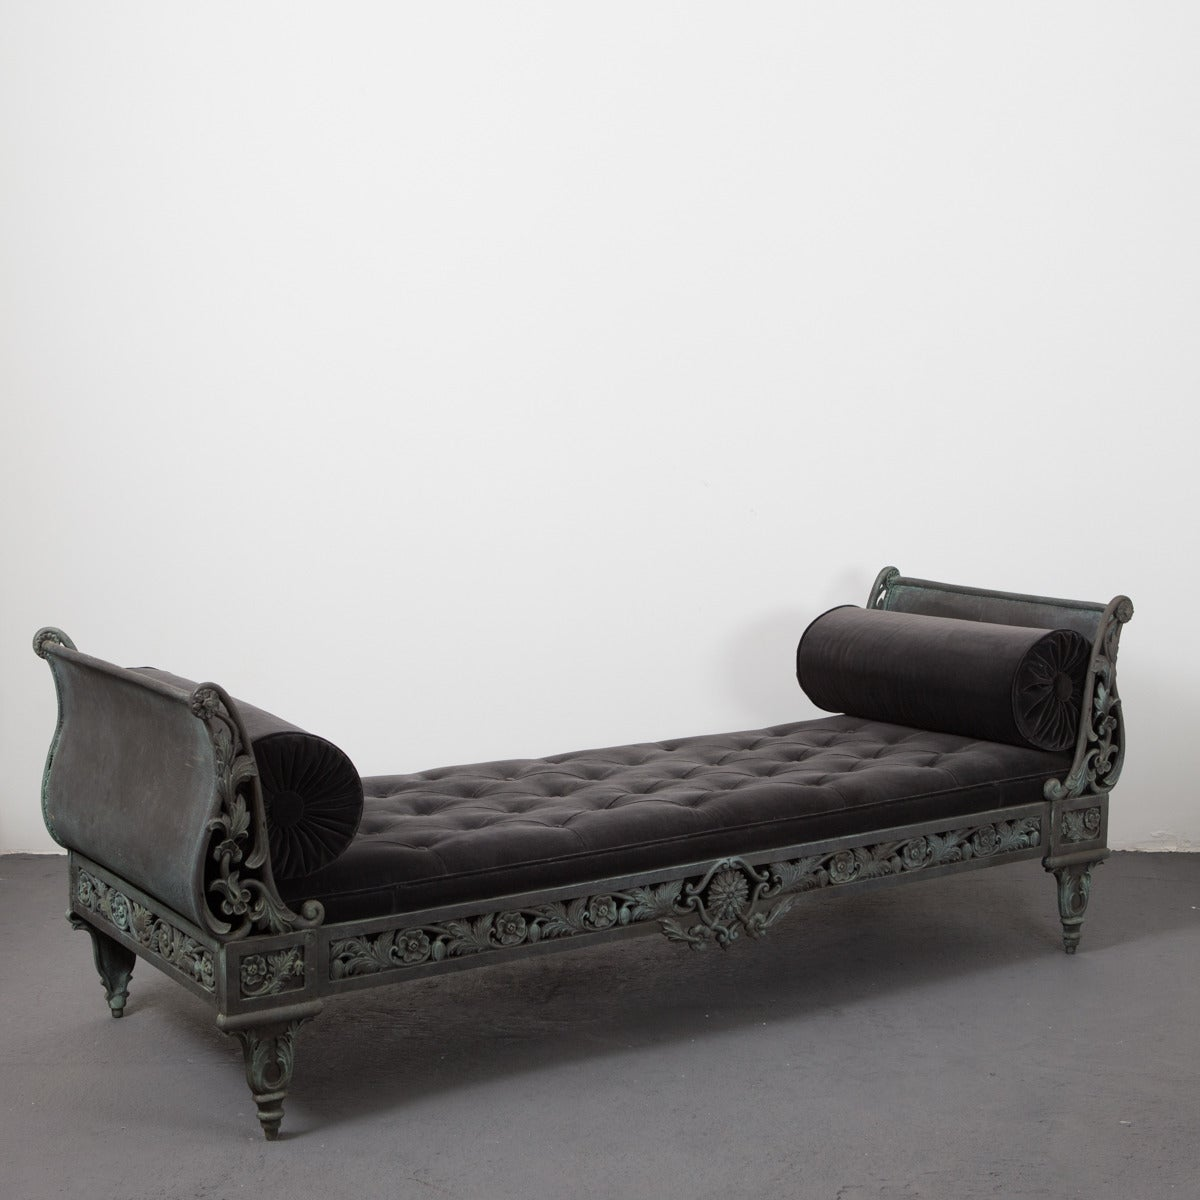 Daybed French 20th Century Cast Iron France. A cast iron daybed in a oxidized green color. All in cast iron with cushion and bolster in dark gray velvet. Frame decorated with flowers and leaves, would go perfectly on a porch or in a garden. Made